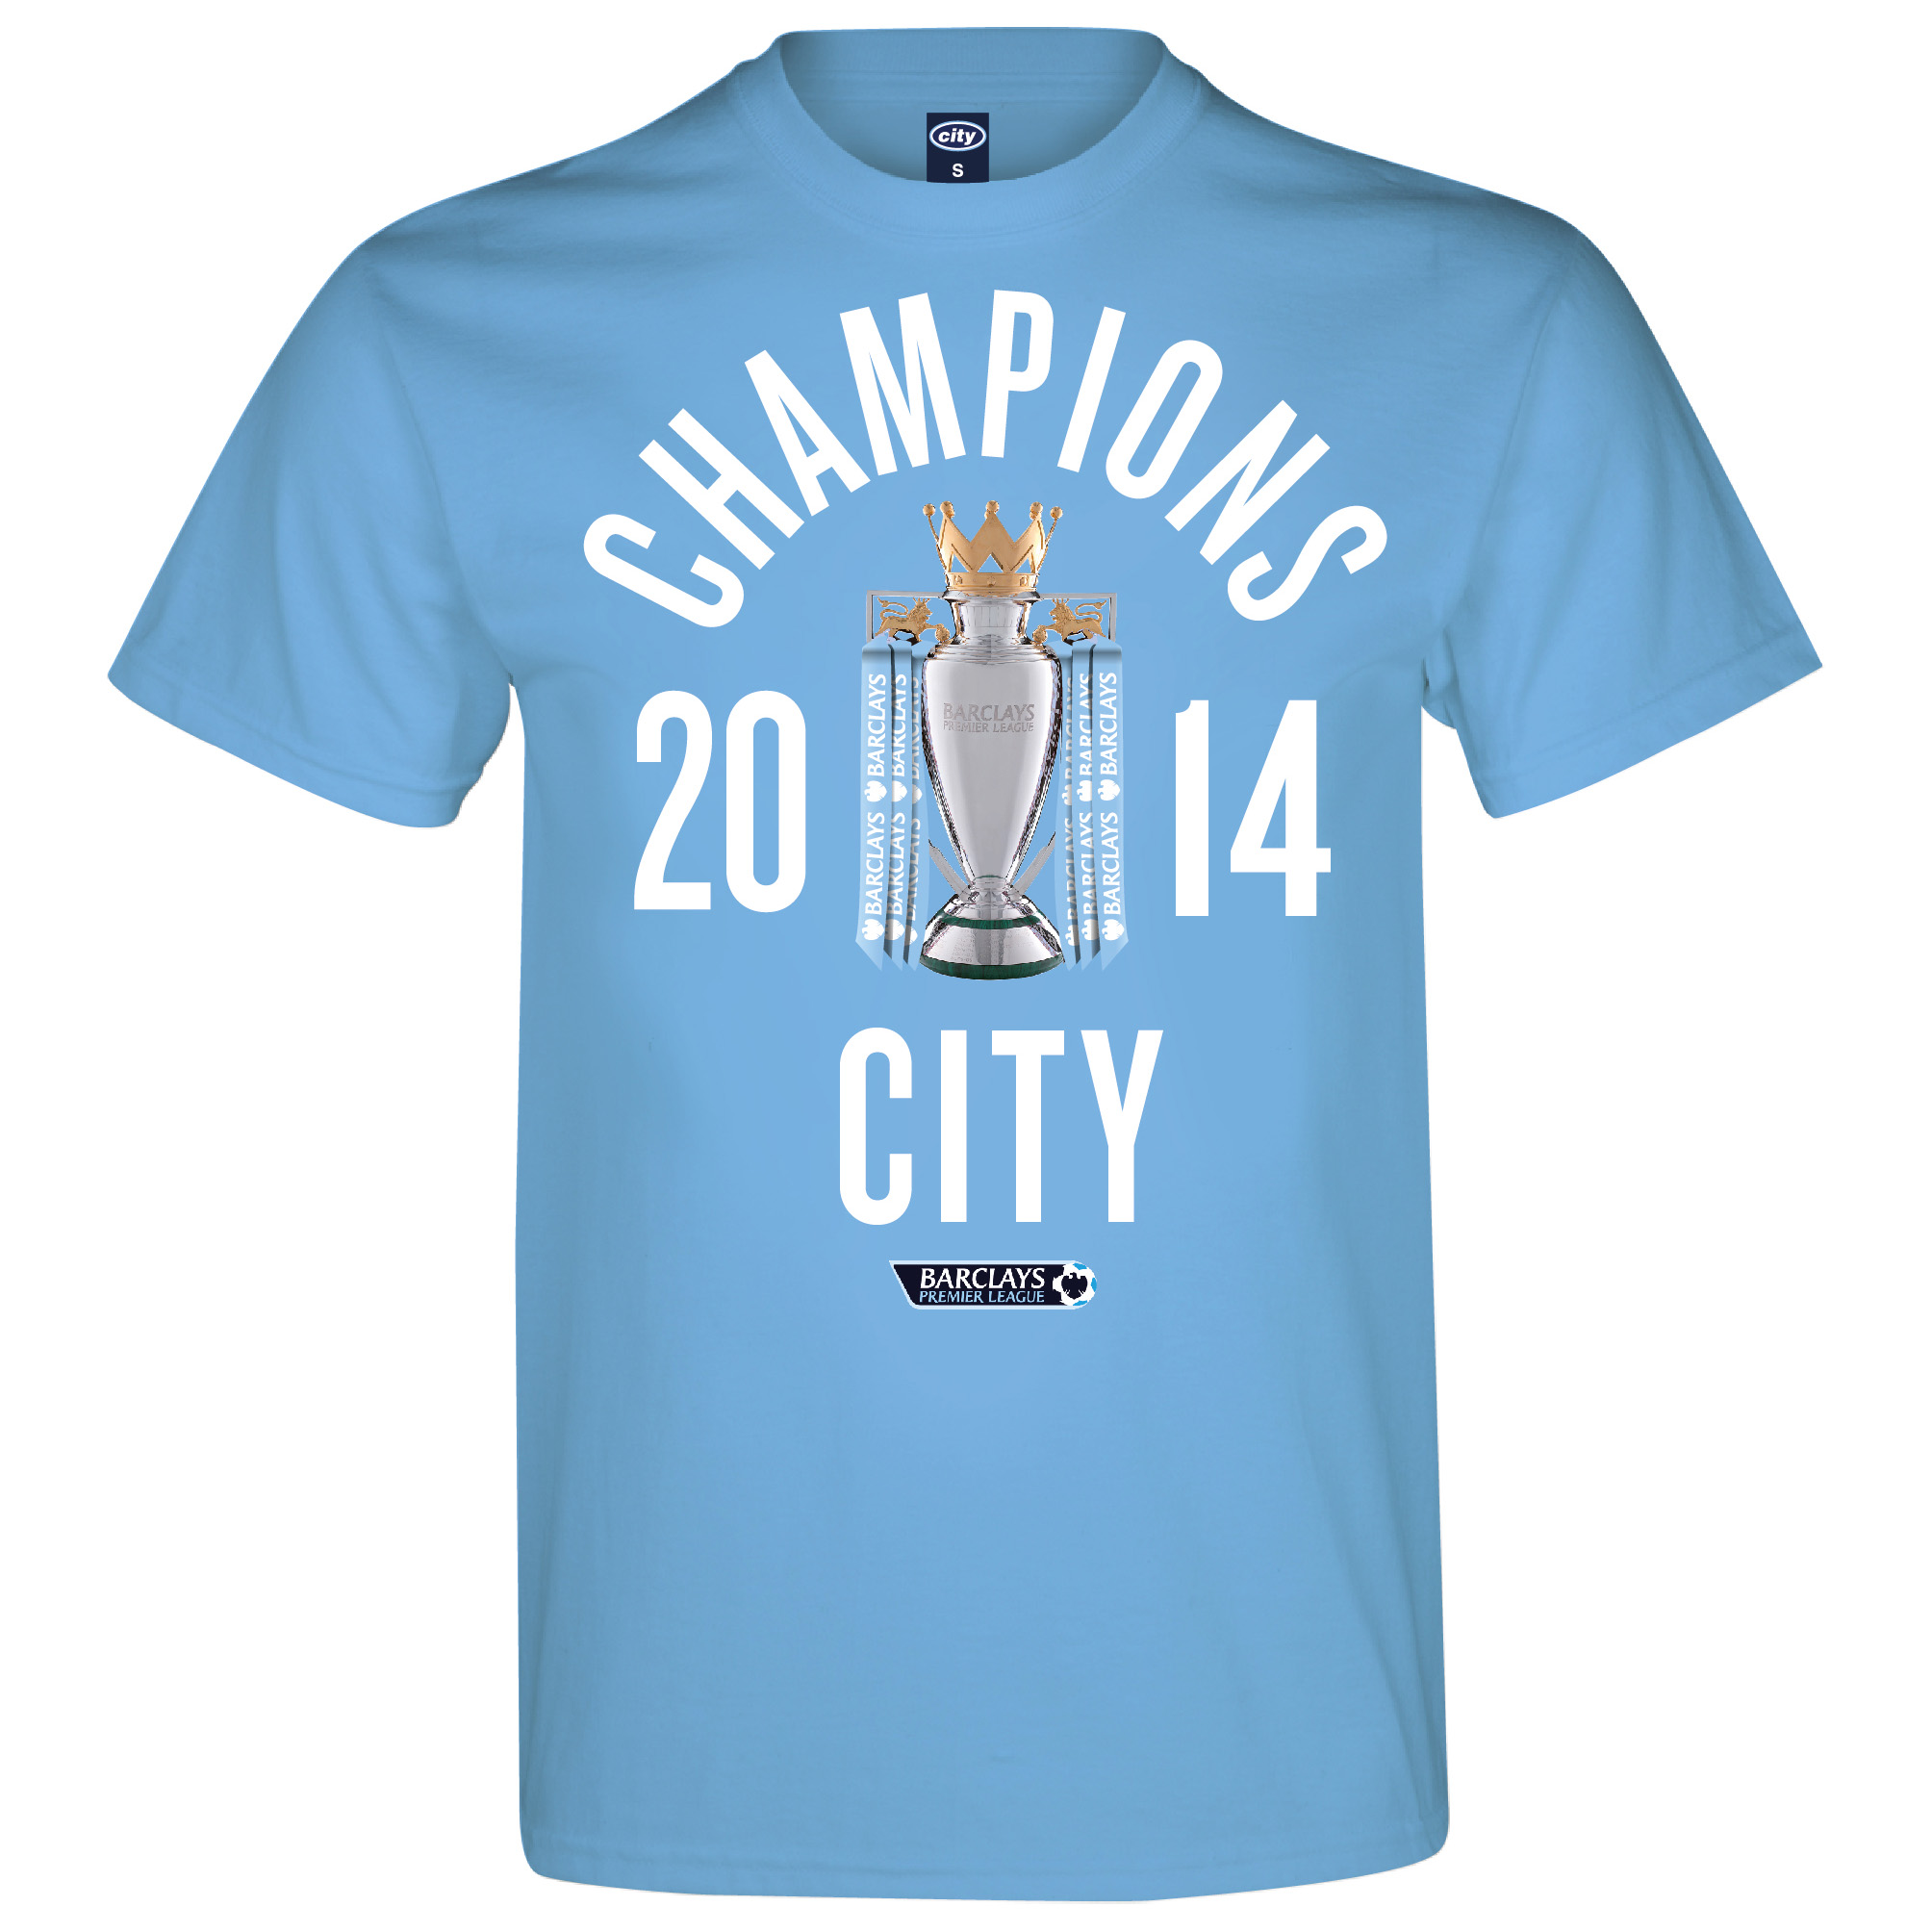 Manchester City 2013/14 Premier league Winners T-Shirt - Sky - Junior